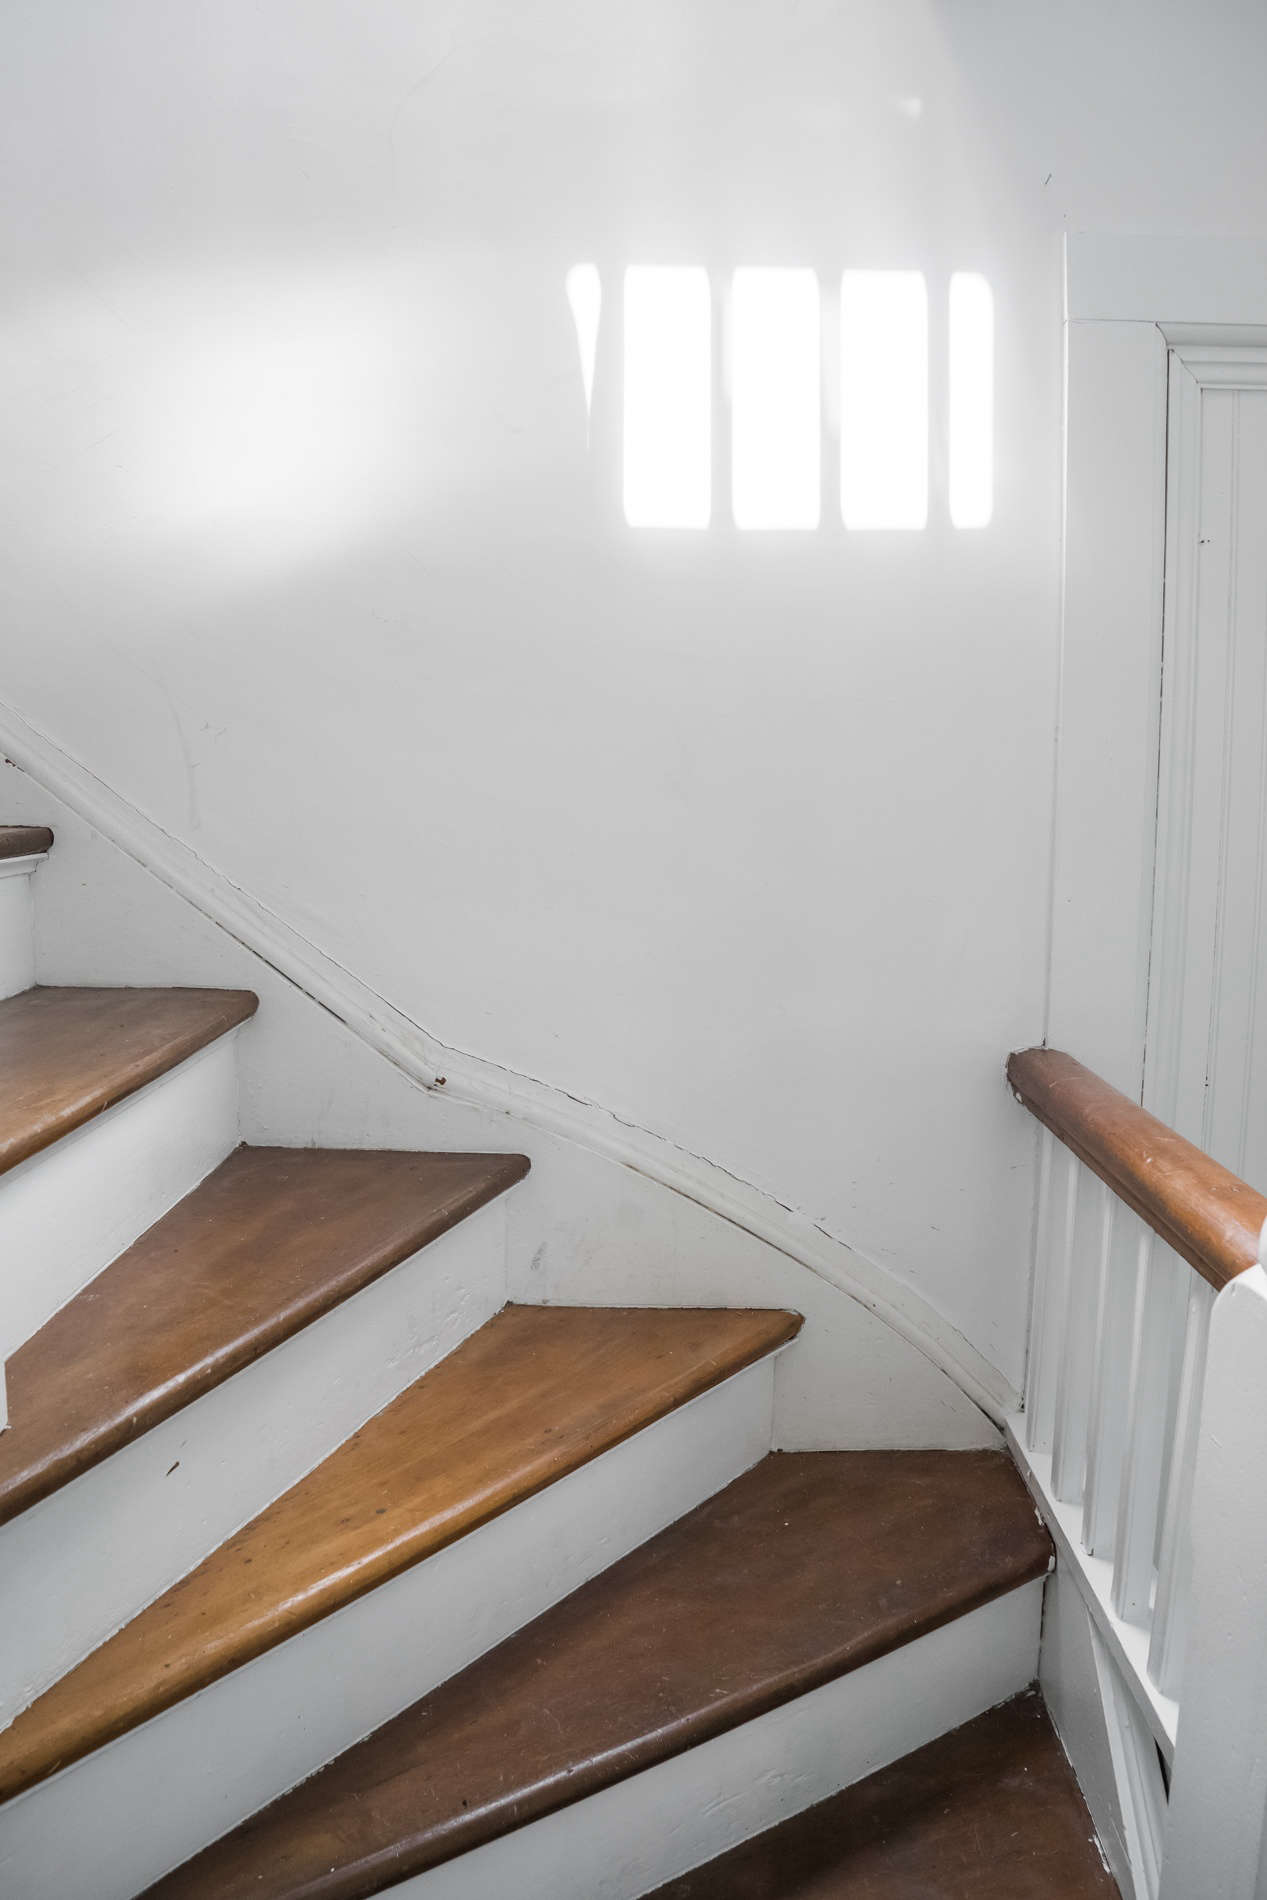 Throughout, original charm and simplicity was left intact. Przystup painted the stairs in Sherwin Williams Extra White and left the original wood treads.